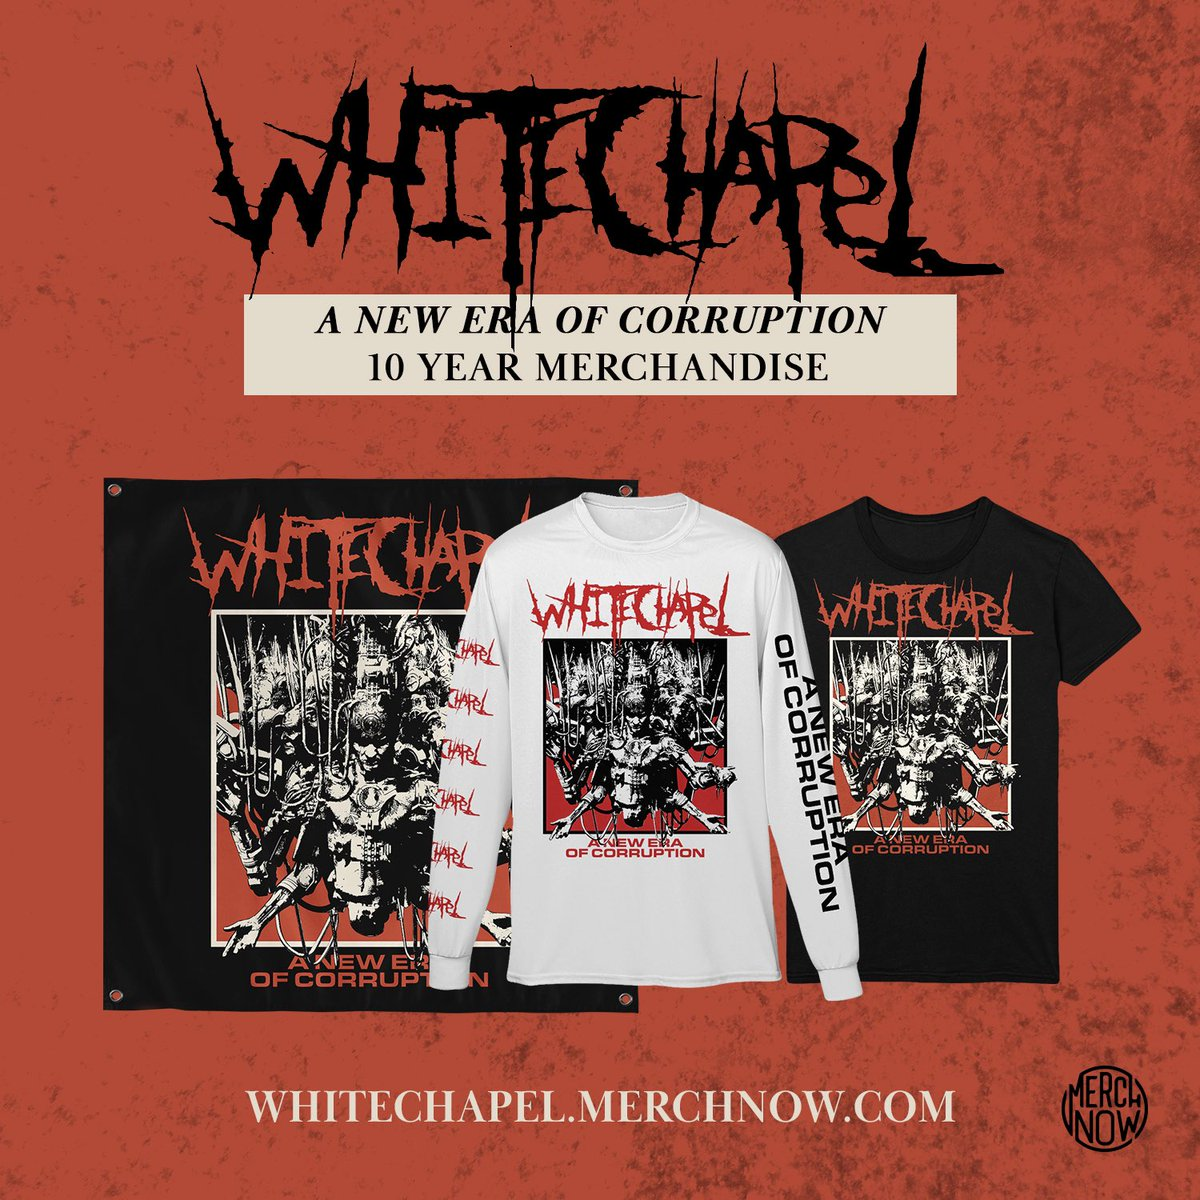 The New Era of Corruption anniversary merch is moving fast! Get yours at https://t.co/Ju1dTx4yMc https://t.co/FZGN9n2etH